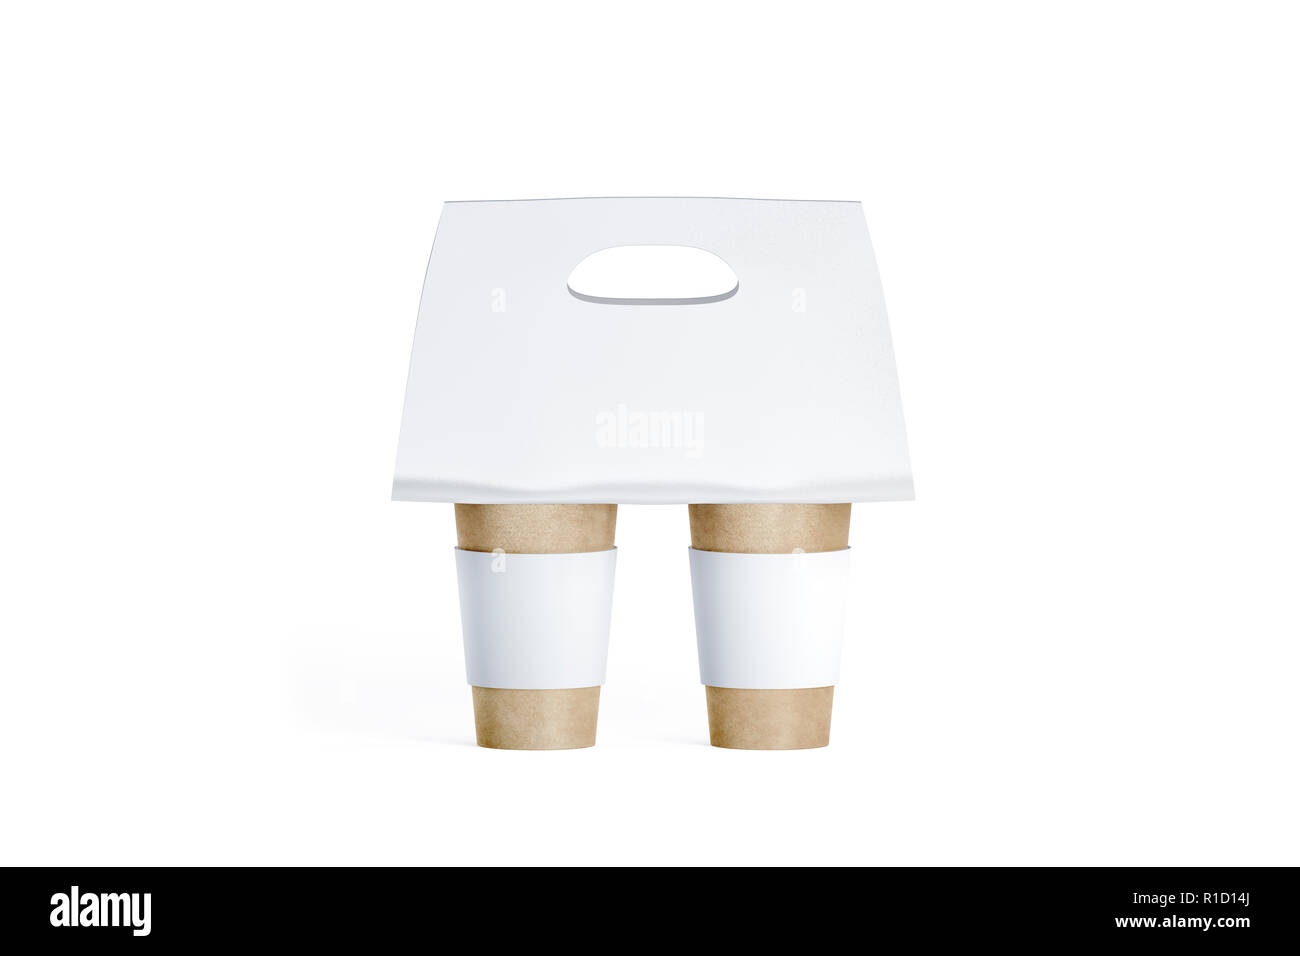 Blank two craft coffee cups white with carrier holder mockup, 3d rendering. Empty paper cupholder mock up, isolated. Mobility koozie package for coffee or tea, front view. Takeout clutches template. - Stock Image